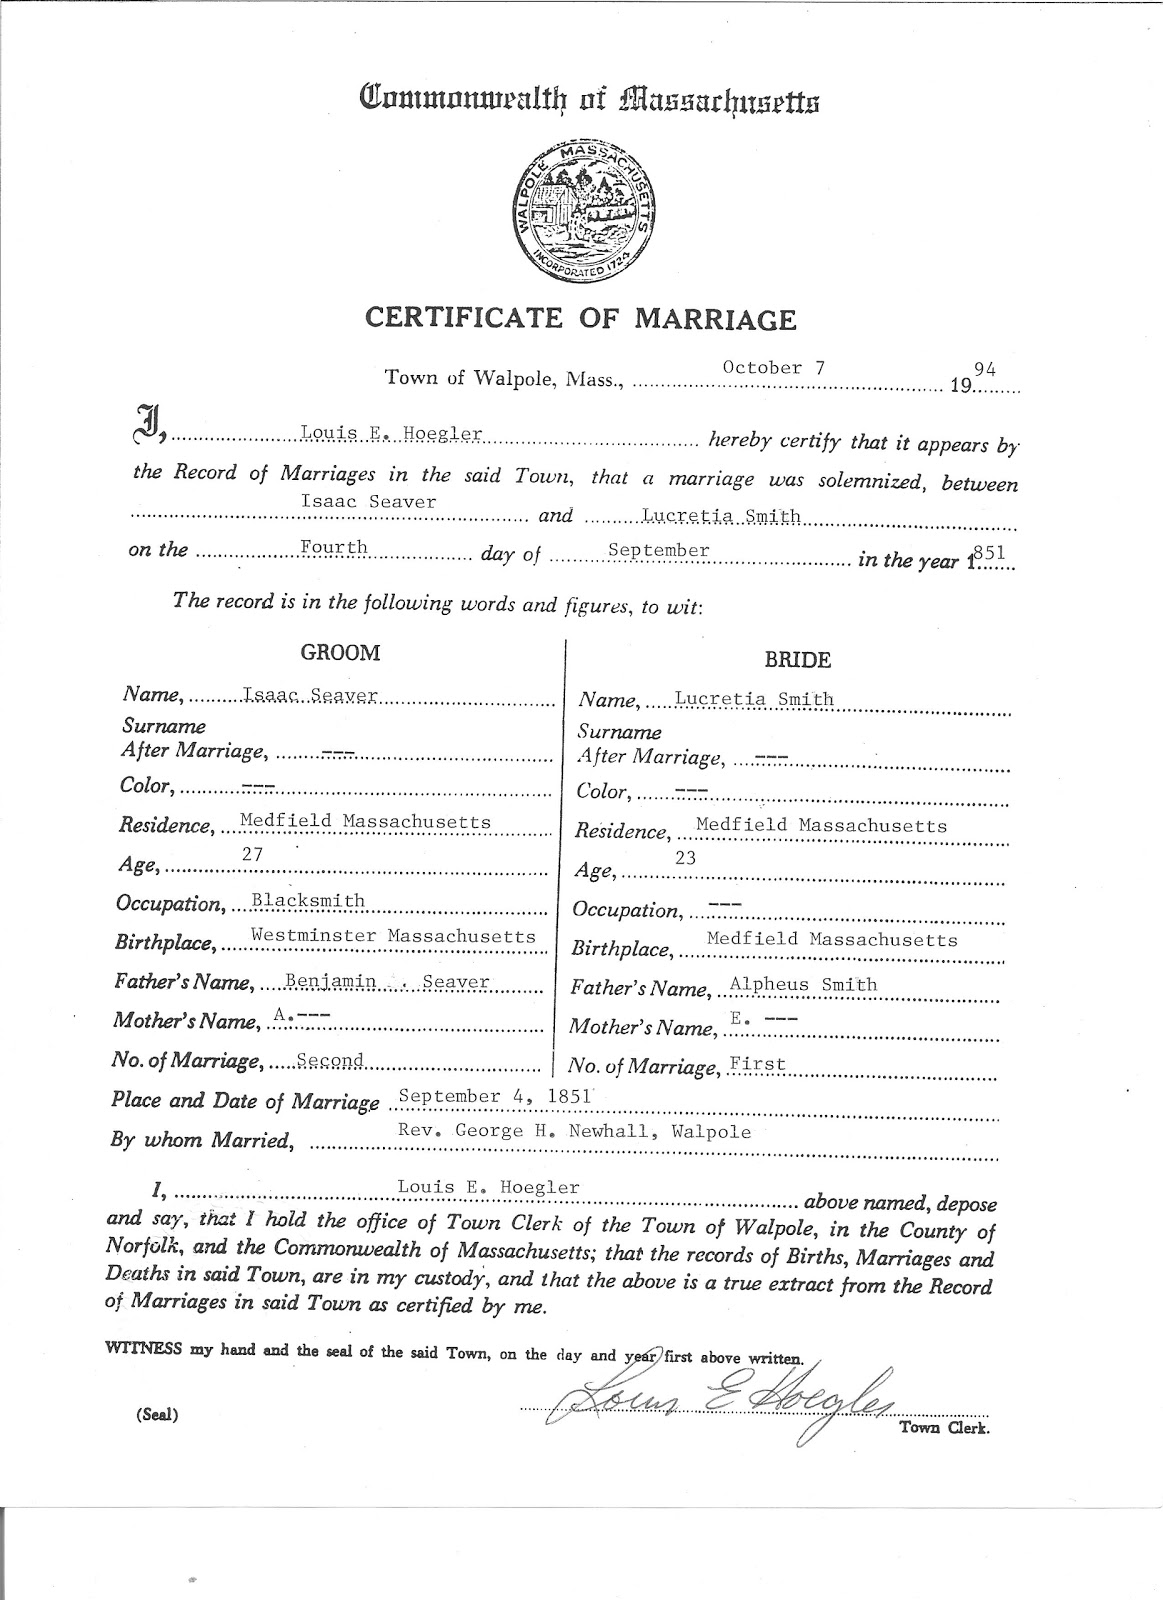 Genea musings treasure chest thursday isaac seaver lucretia i obtained this marriage certificate by postal mail from the walpole town clerks office on 7 october 1994 1betcityfo Gallery